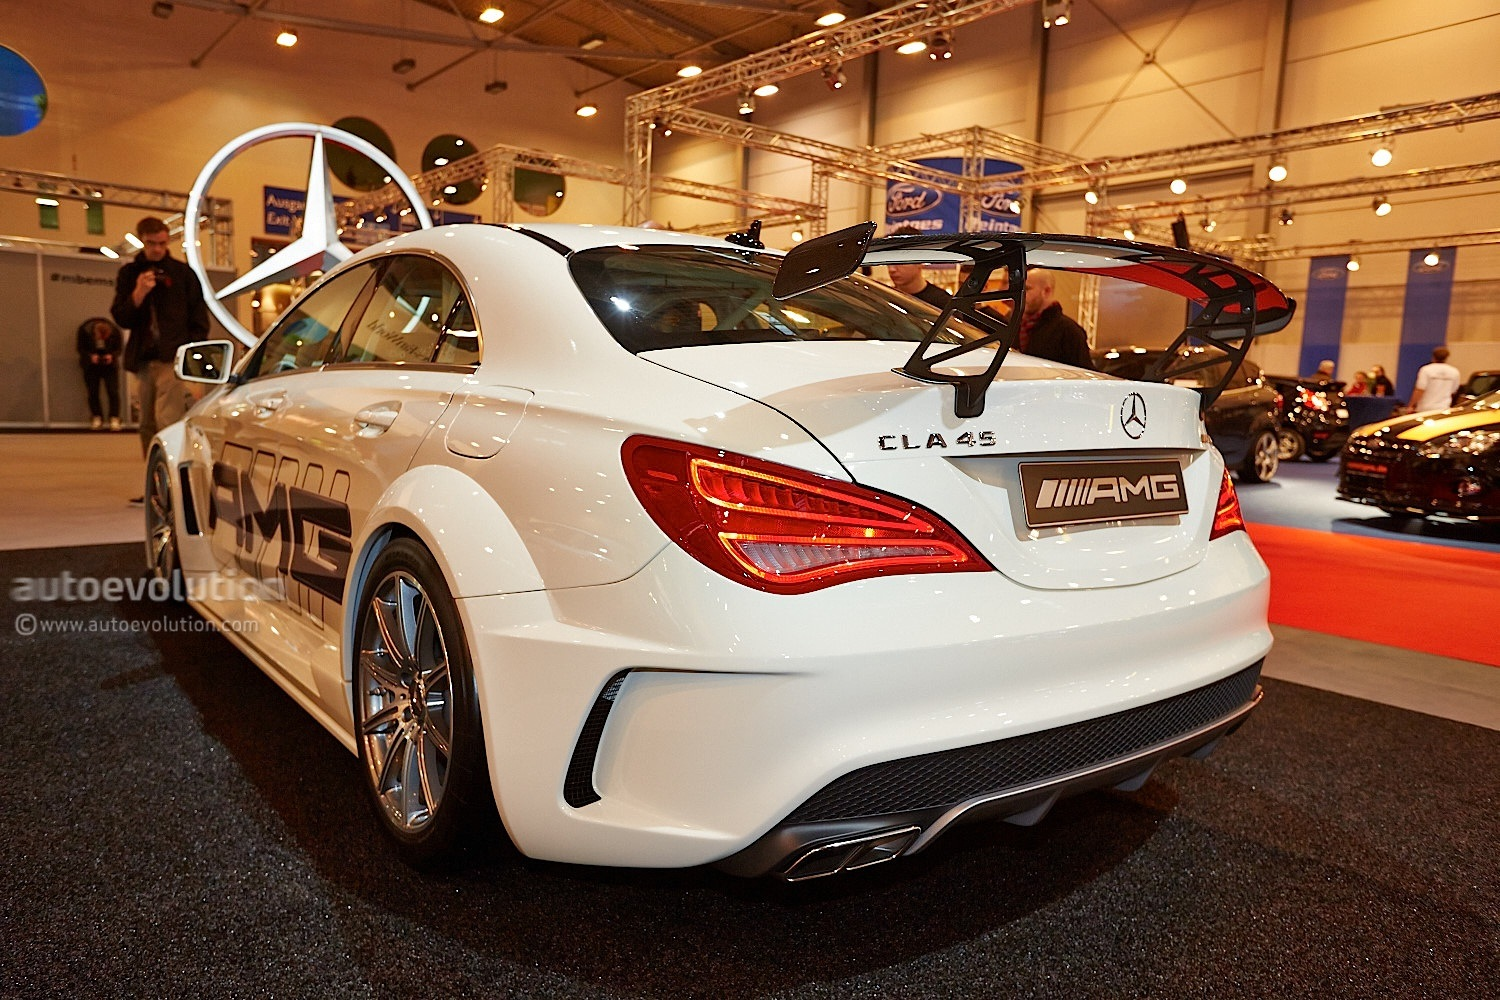 http://s1.cdn.autoevolution.com/images/news/gallery/cla-45-amg-racing-series-shows-up-in-esssen-video-live-photos_5.jpg?1386007611